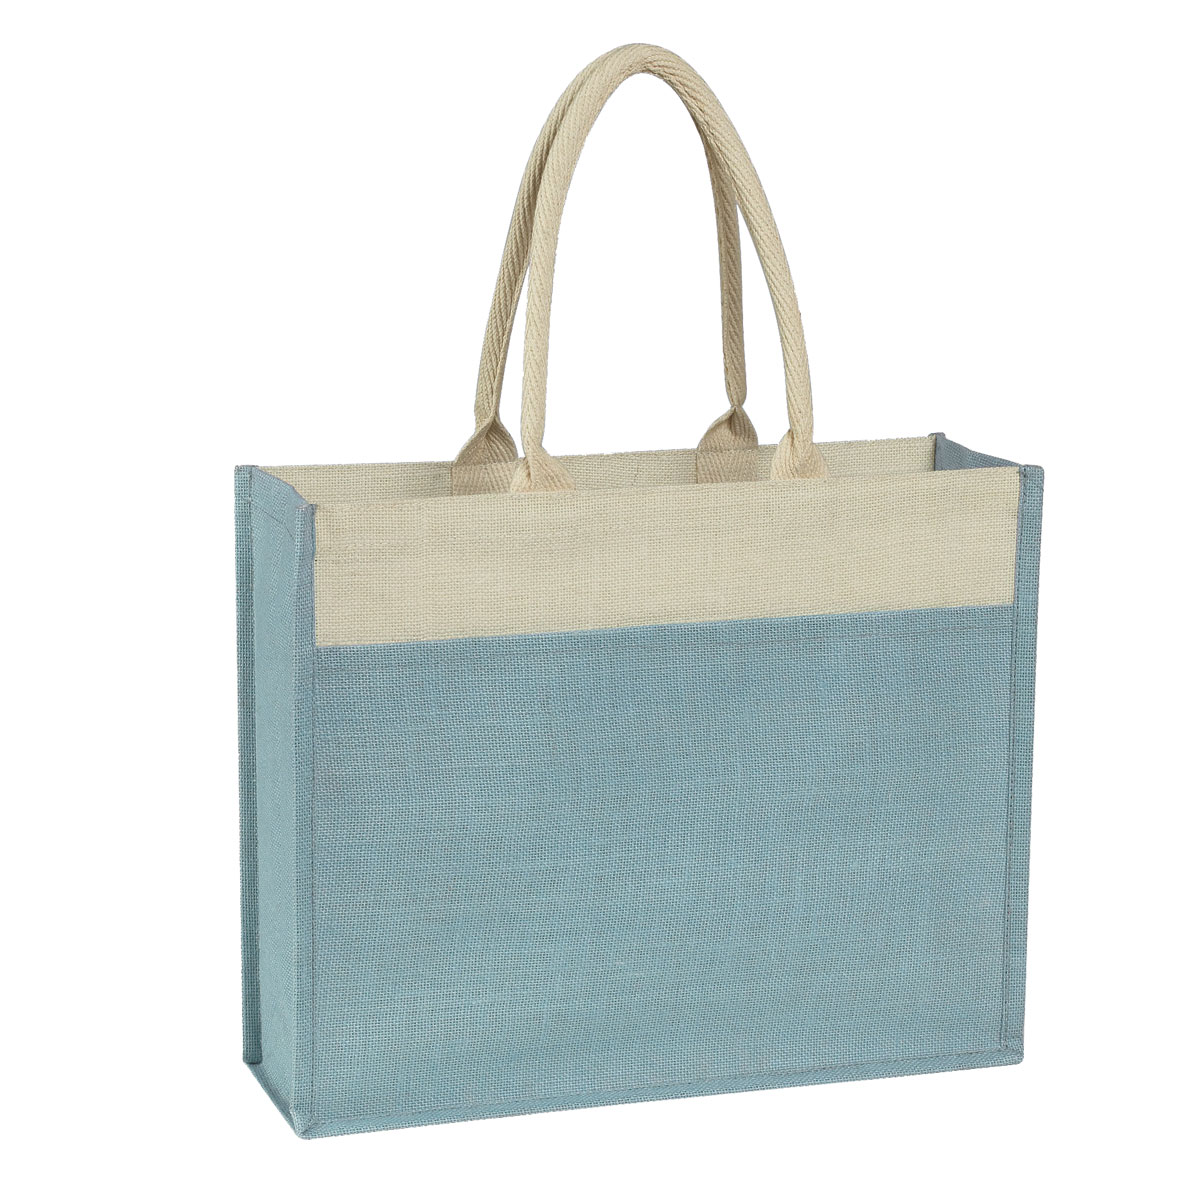 3617 Jute Tote Bag With Front Pocket